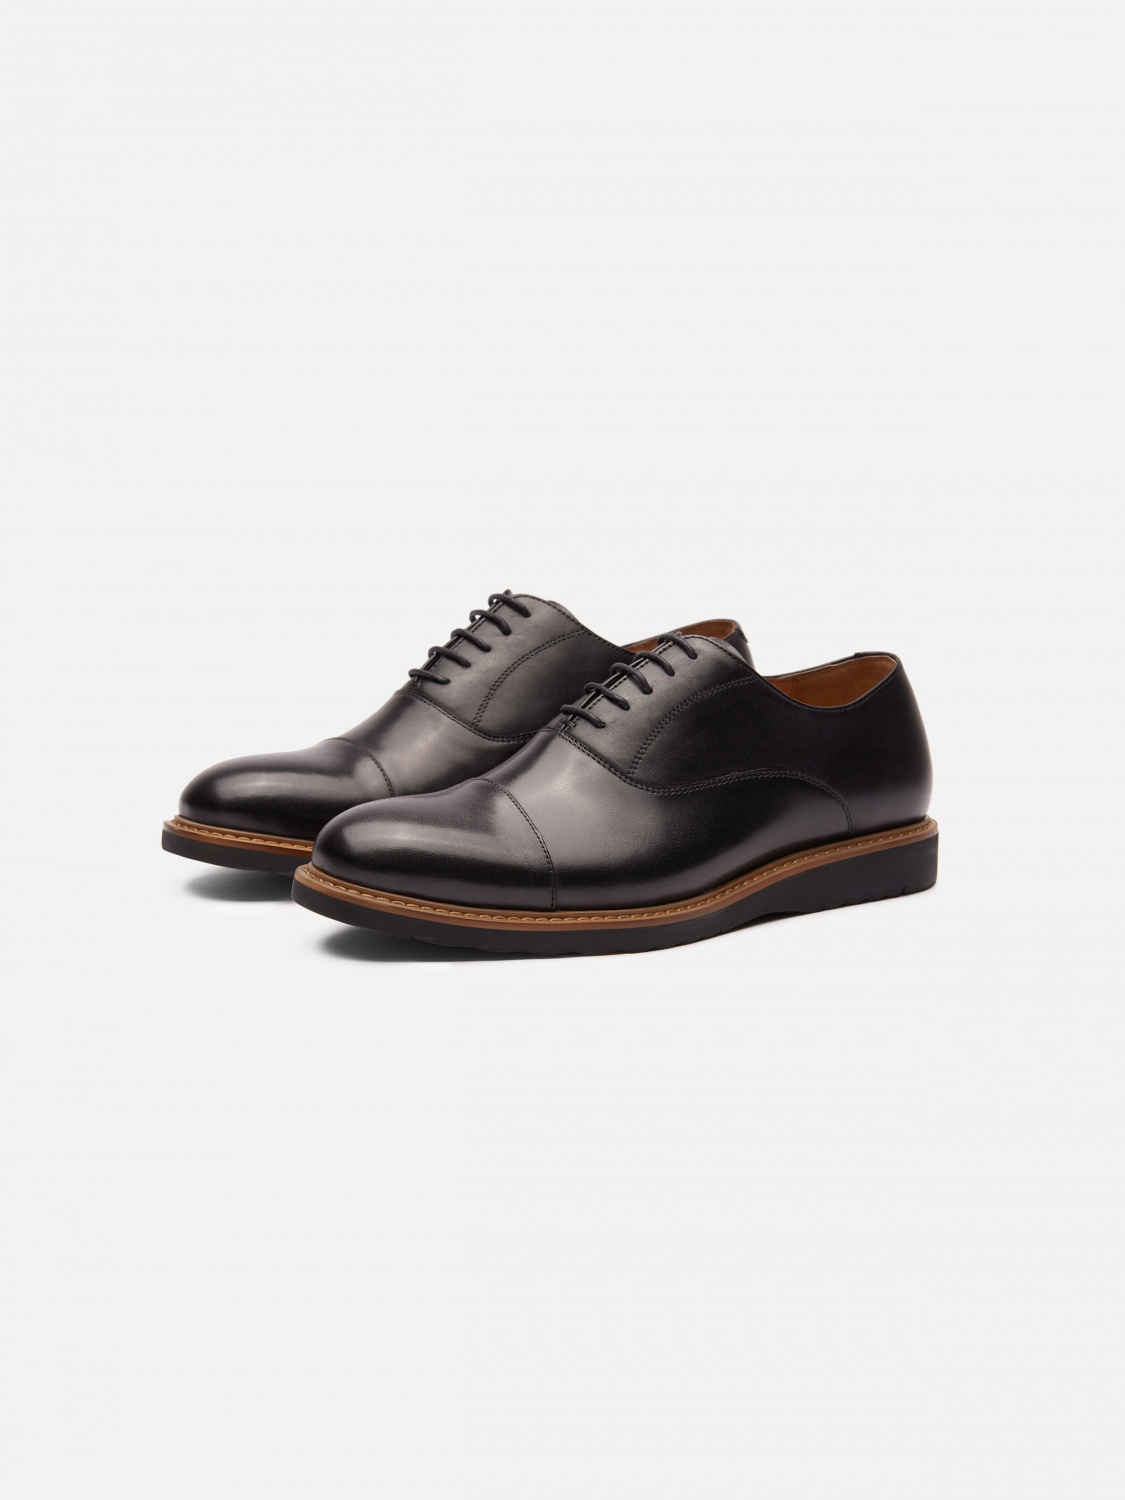 belfort cap toe - black